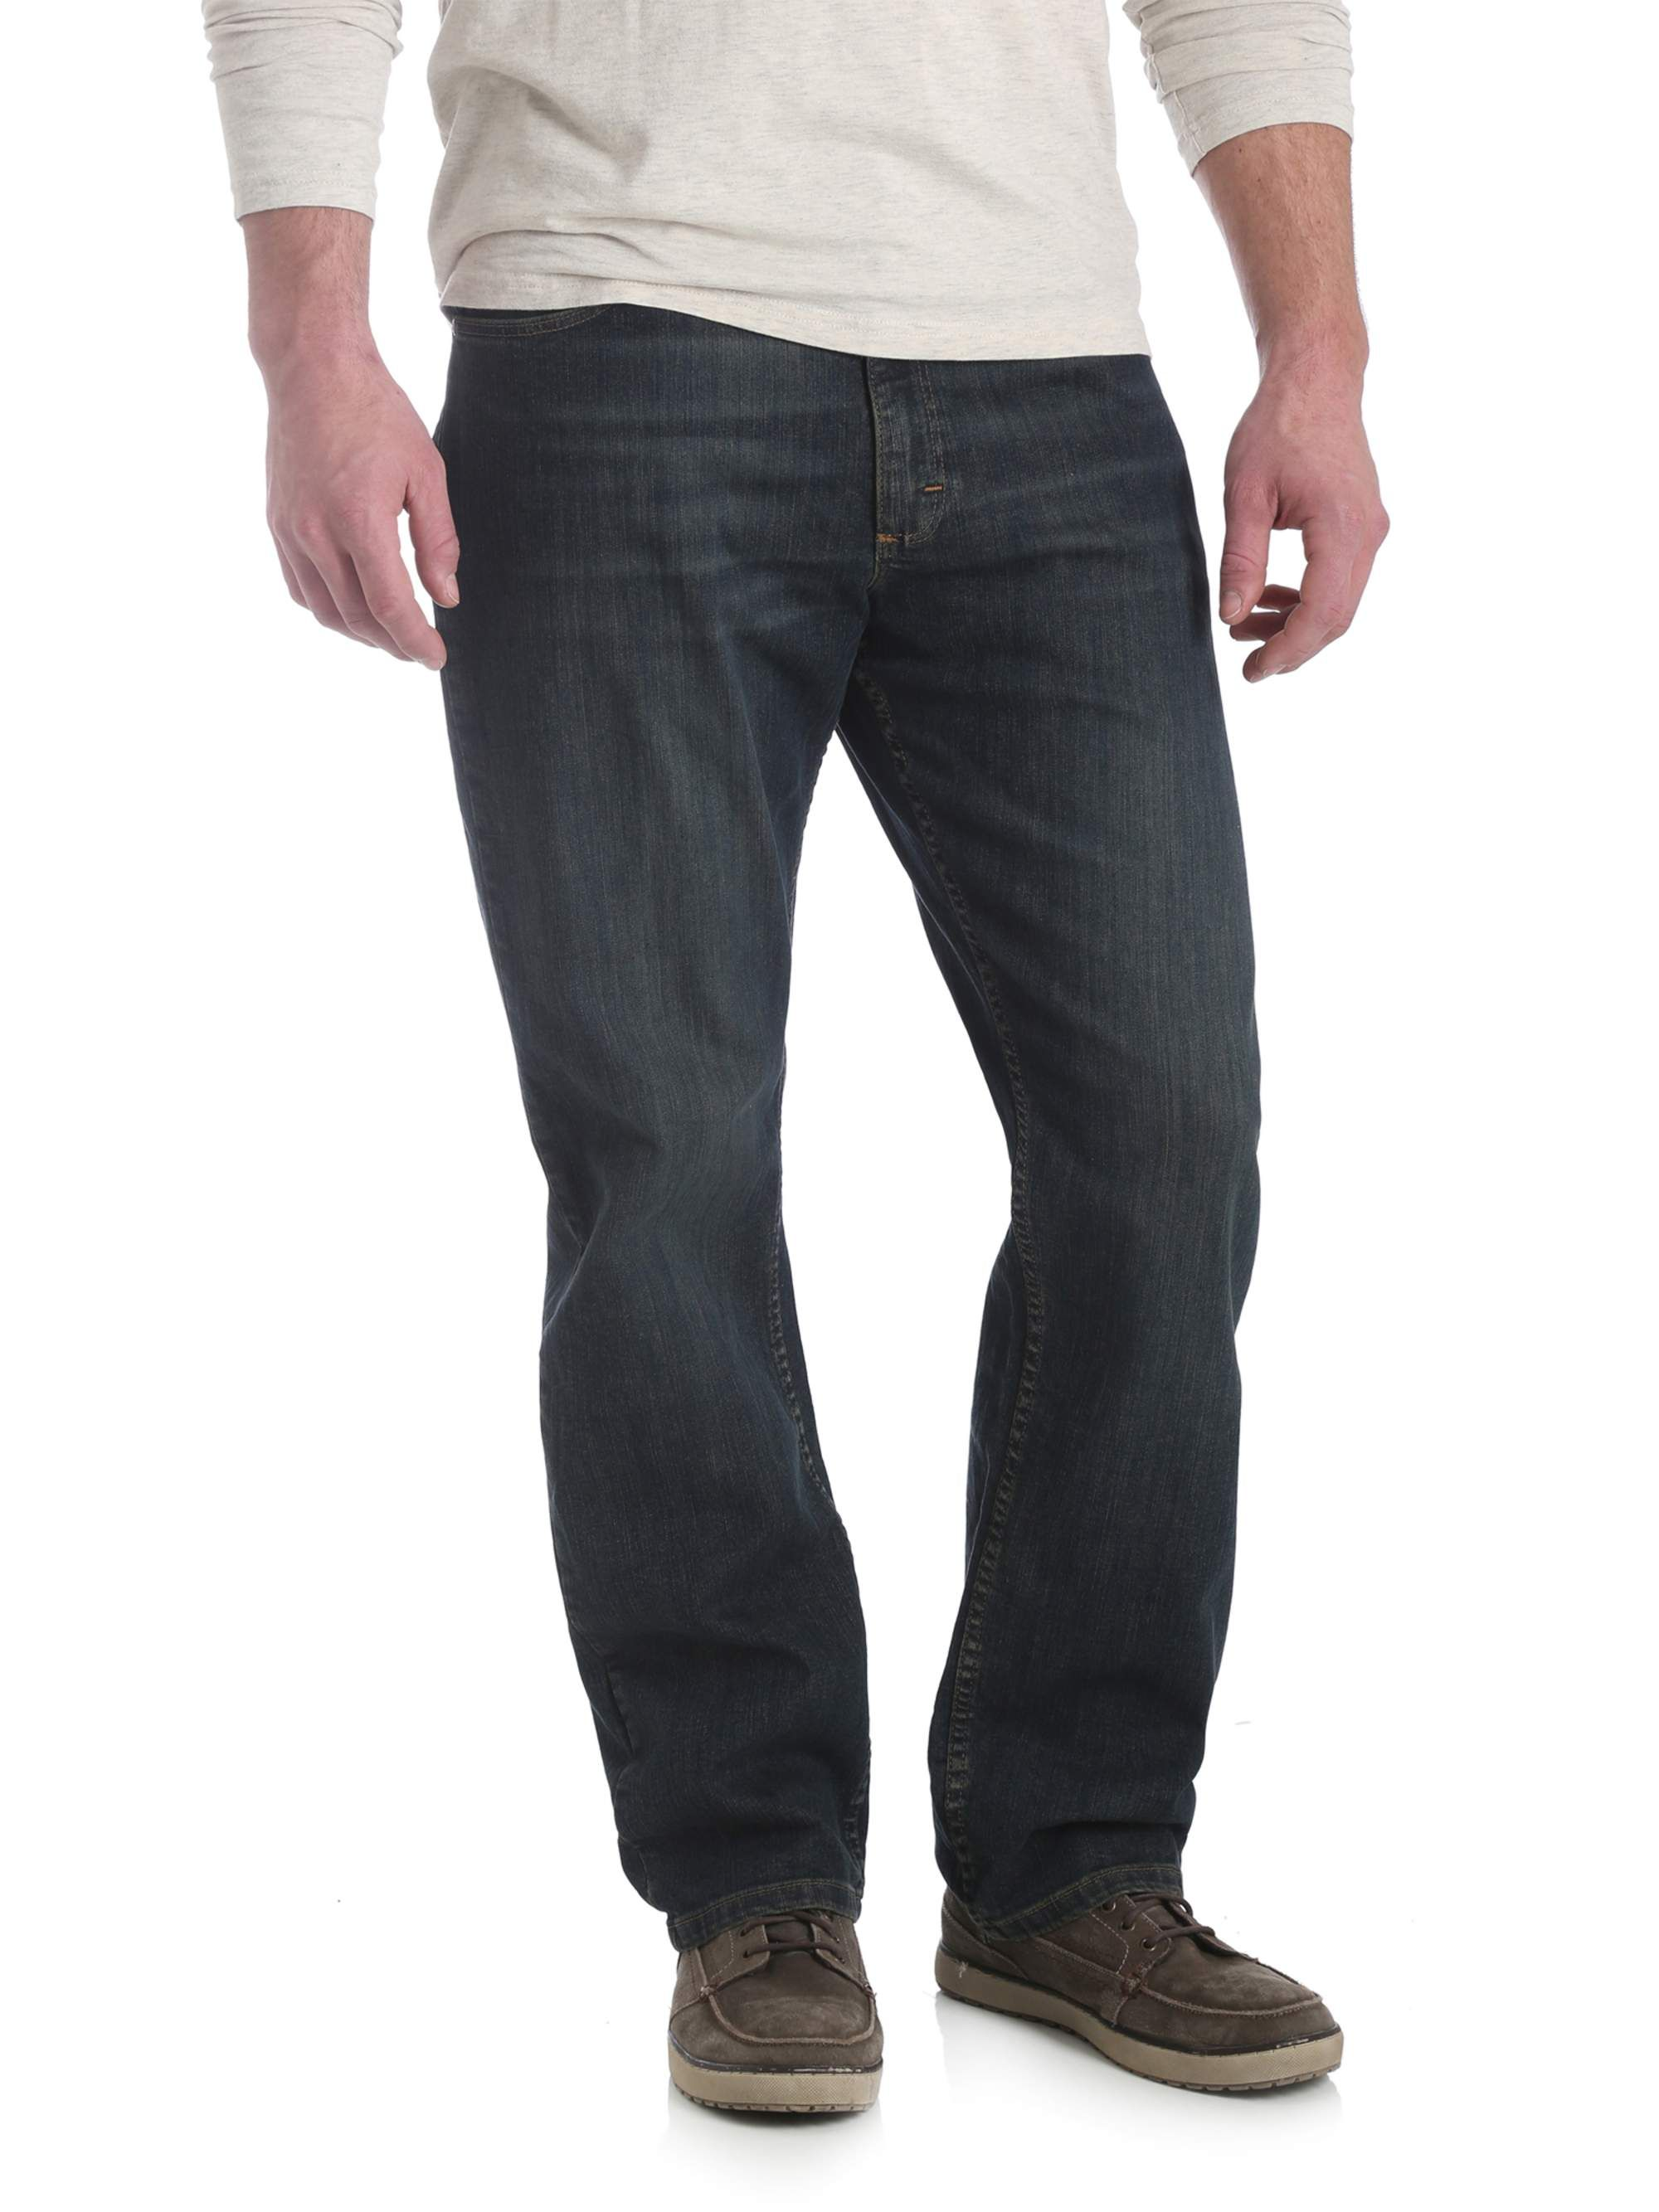 Mens jeans with images straight fit jeans relaxed